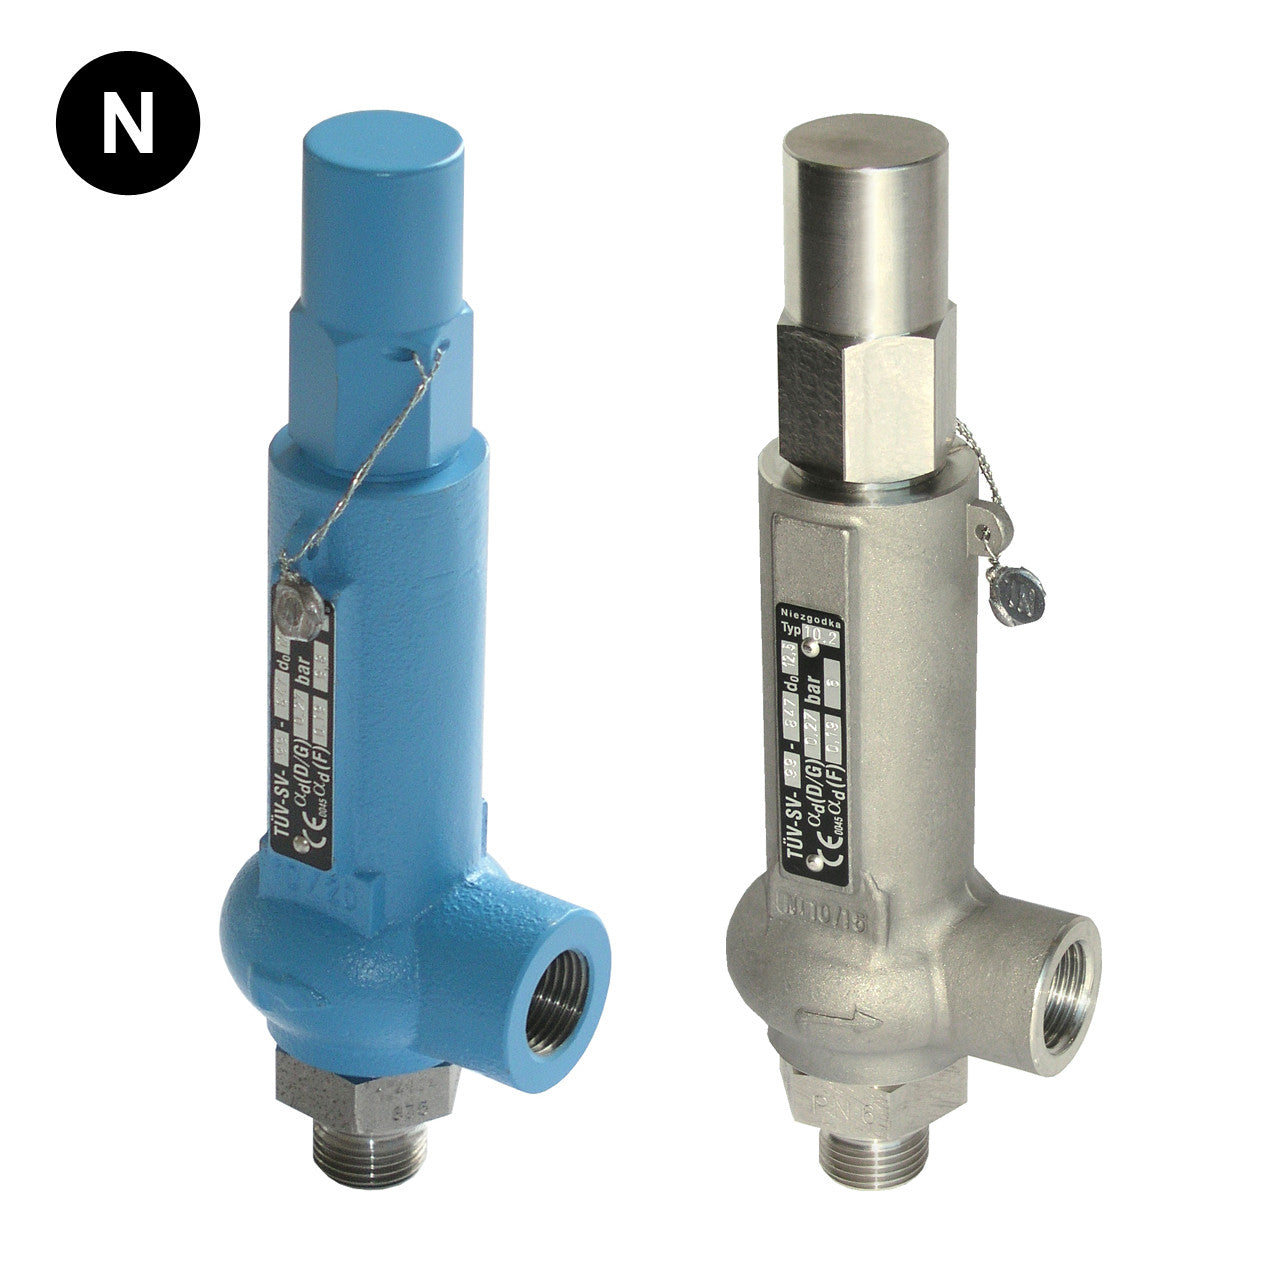 Safety valve with pressure control: types 62